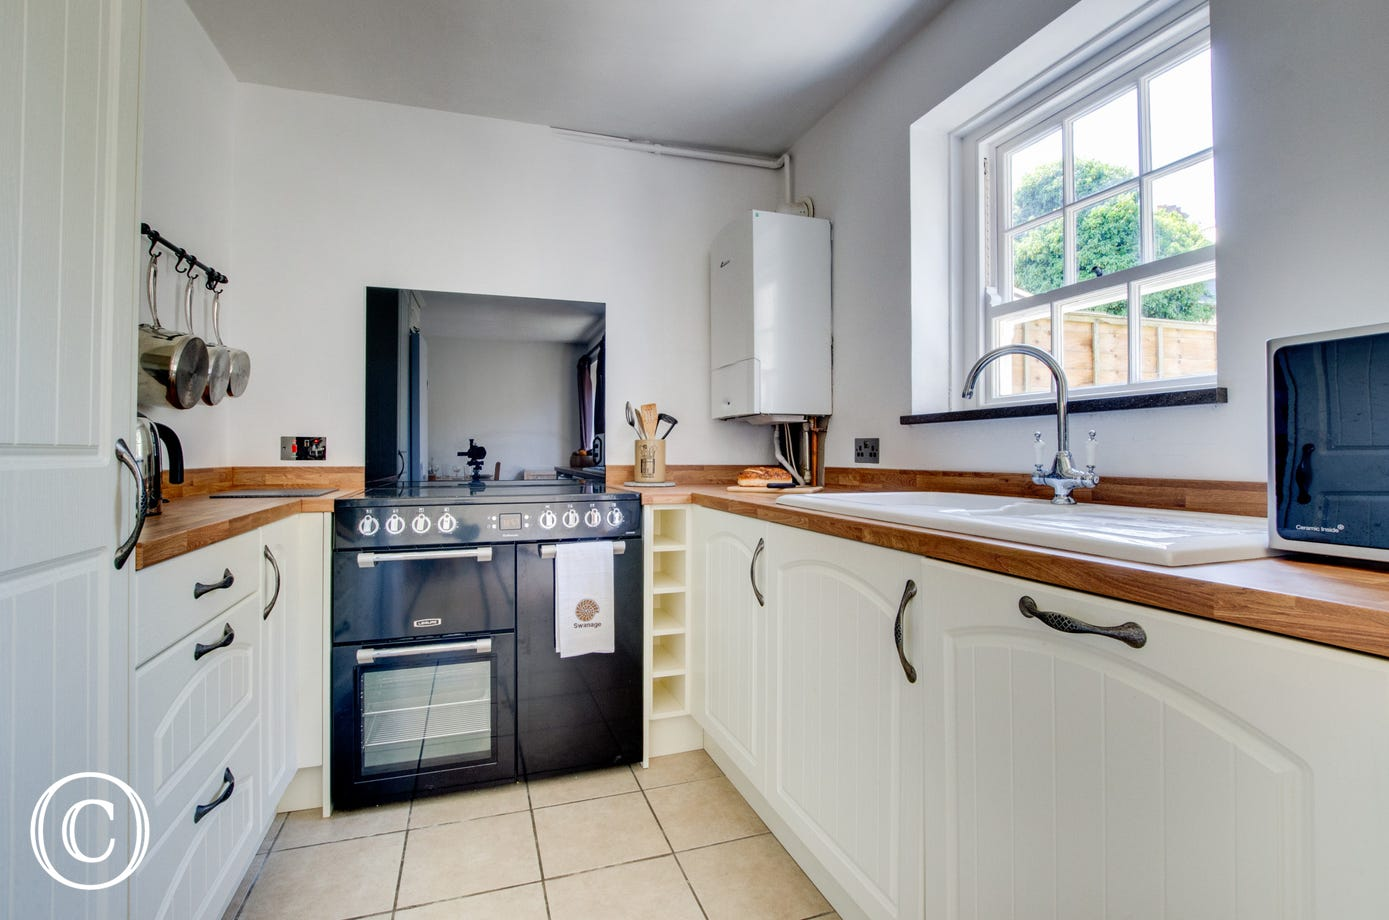 Newly renovated kitchen with Range cooker